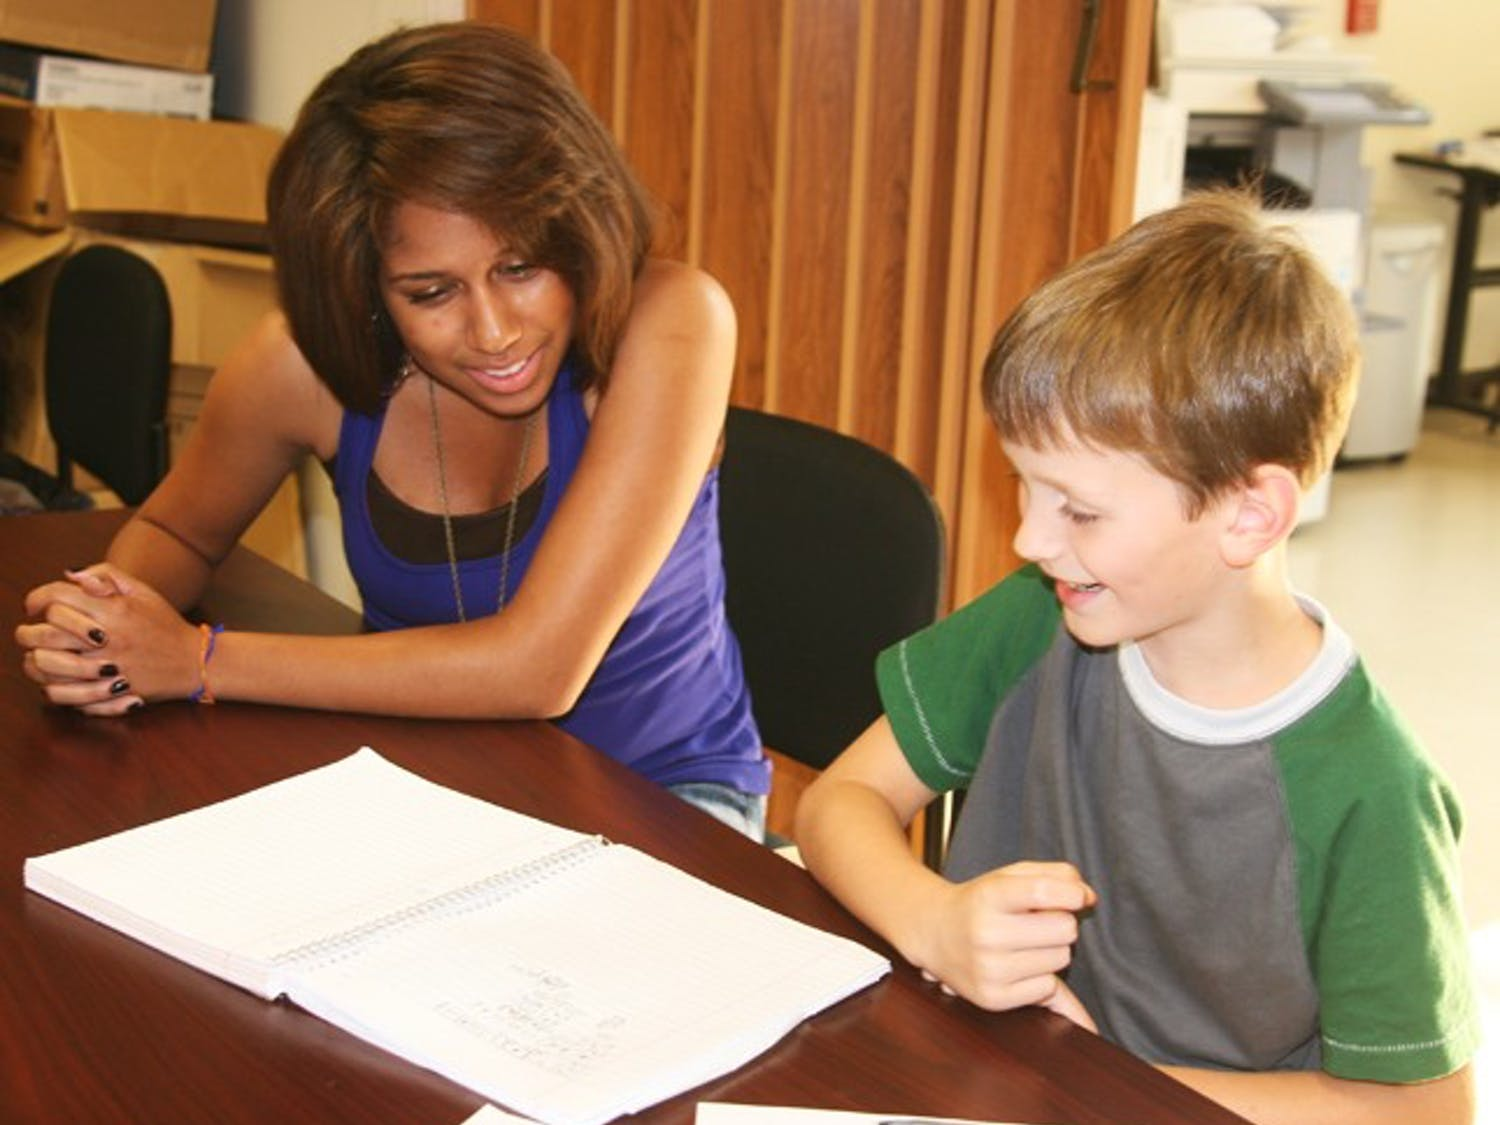 Jasmine Nesi, a tutor with UNC Habitat for Humanity, helps Zachary Butcher, 9, with his math homework at Central Elementary in Hillsborough.